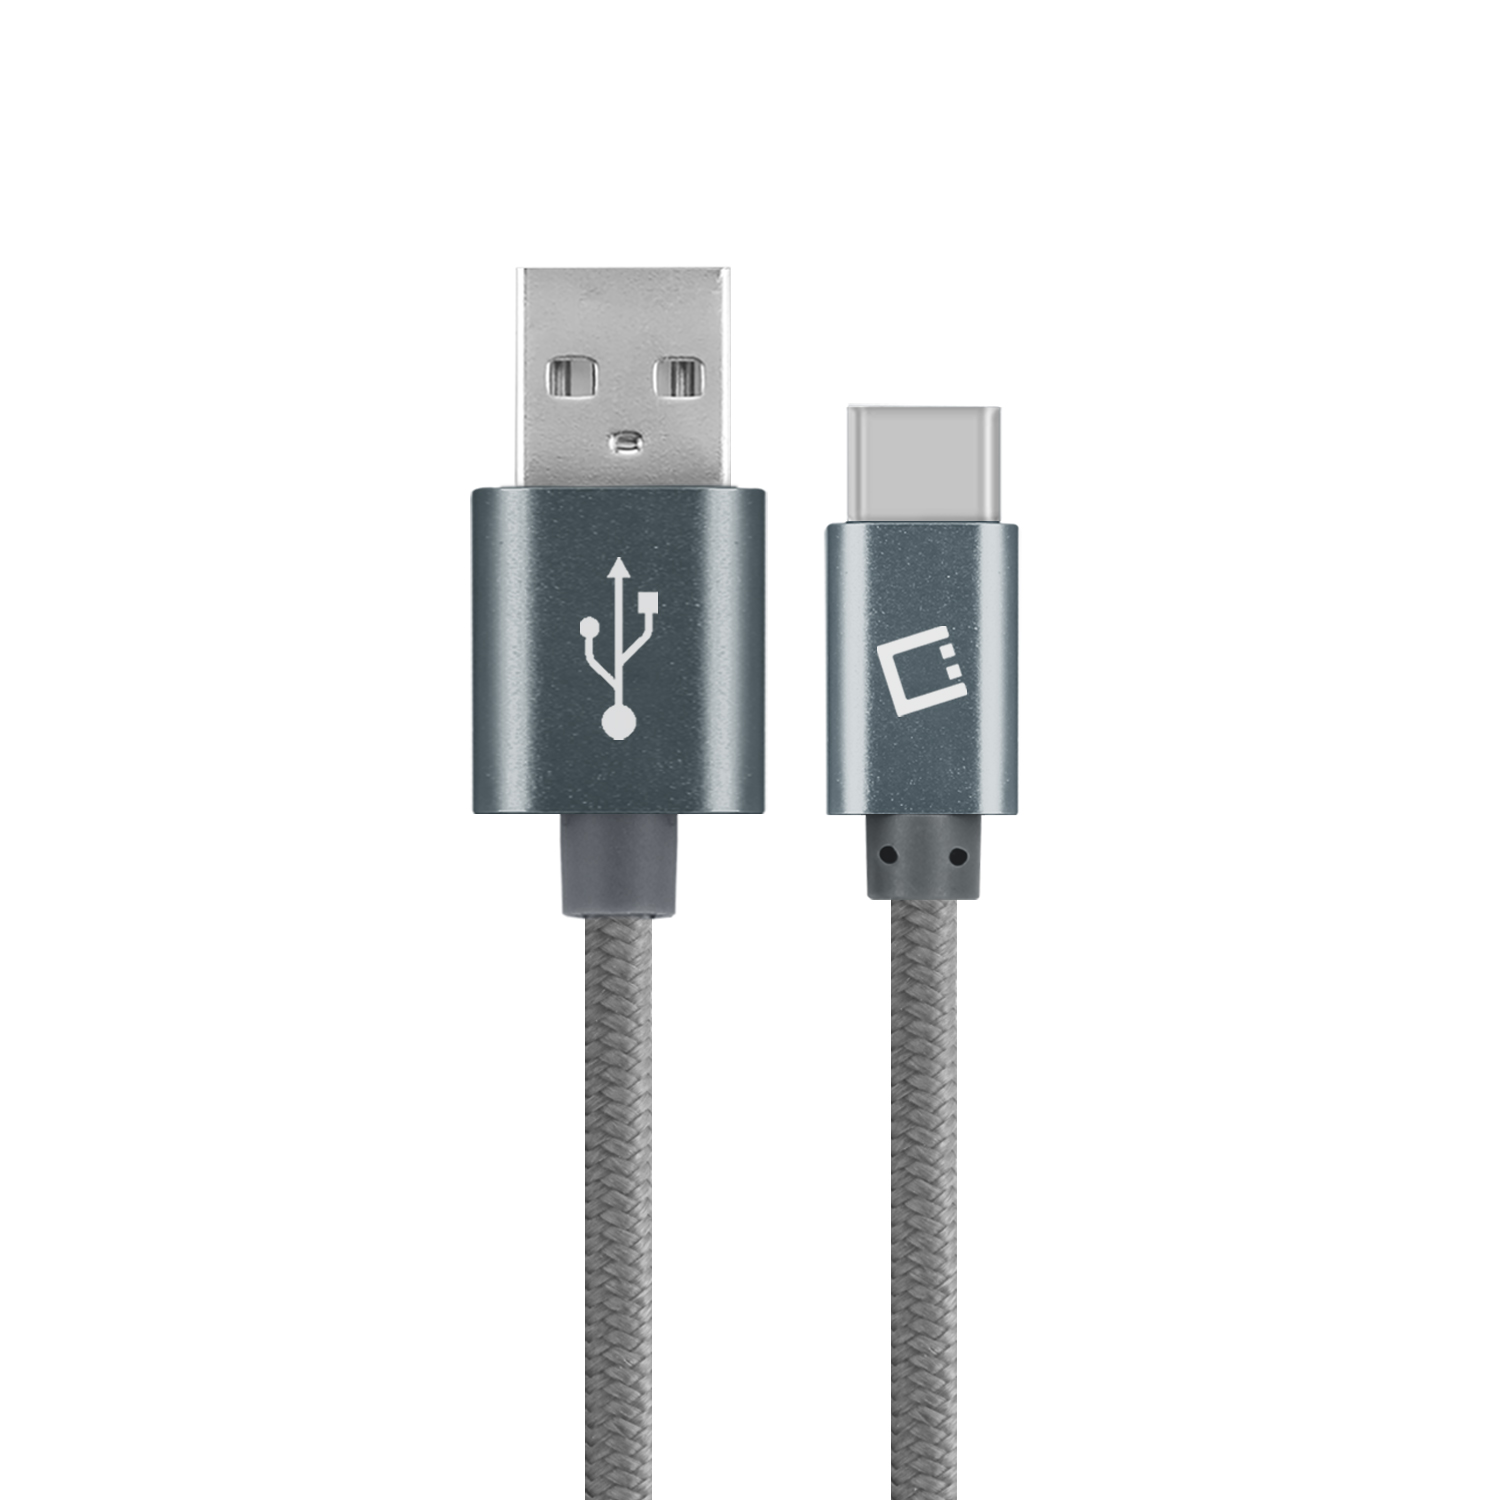 Sony Xperia XA1 USB Type-C To Type-A Braided Data Power Cable Grey 6ft Braided